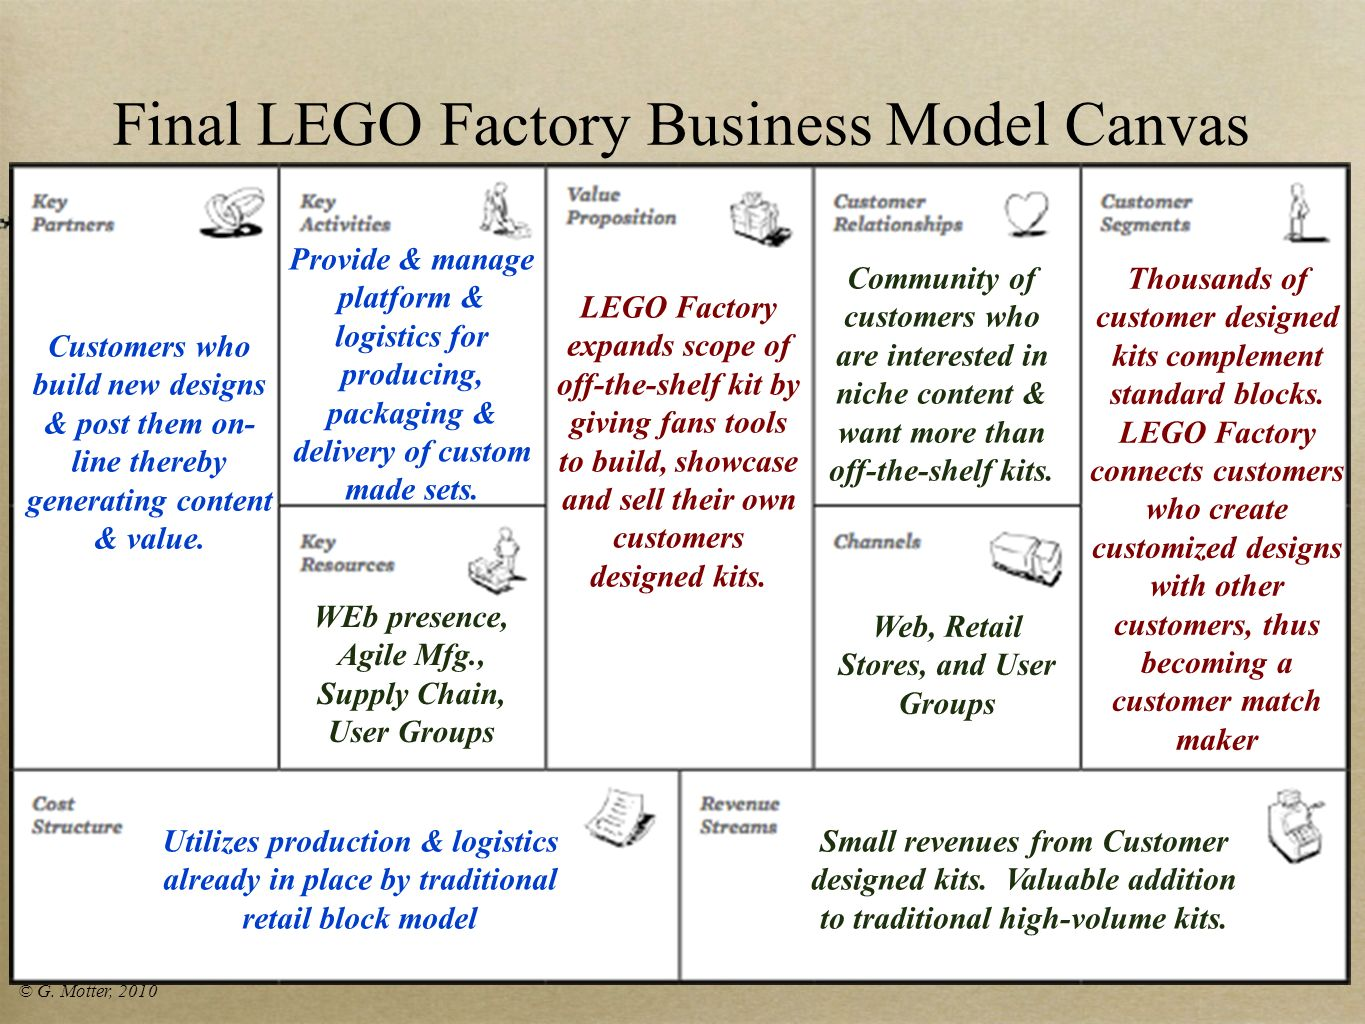 Final LEGO Factory Business Model Canvas